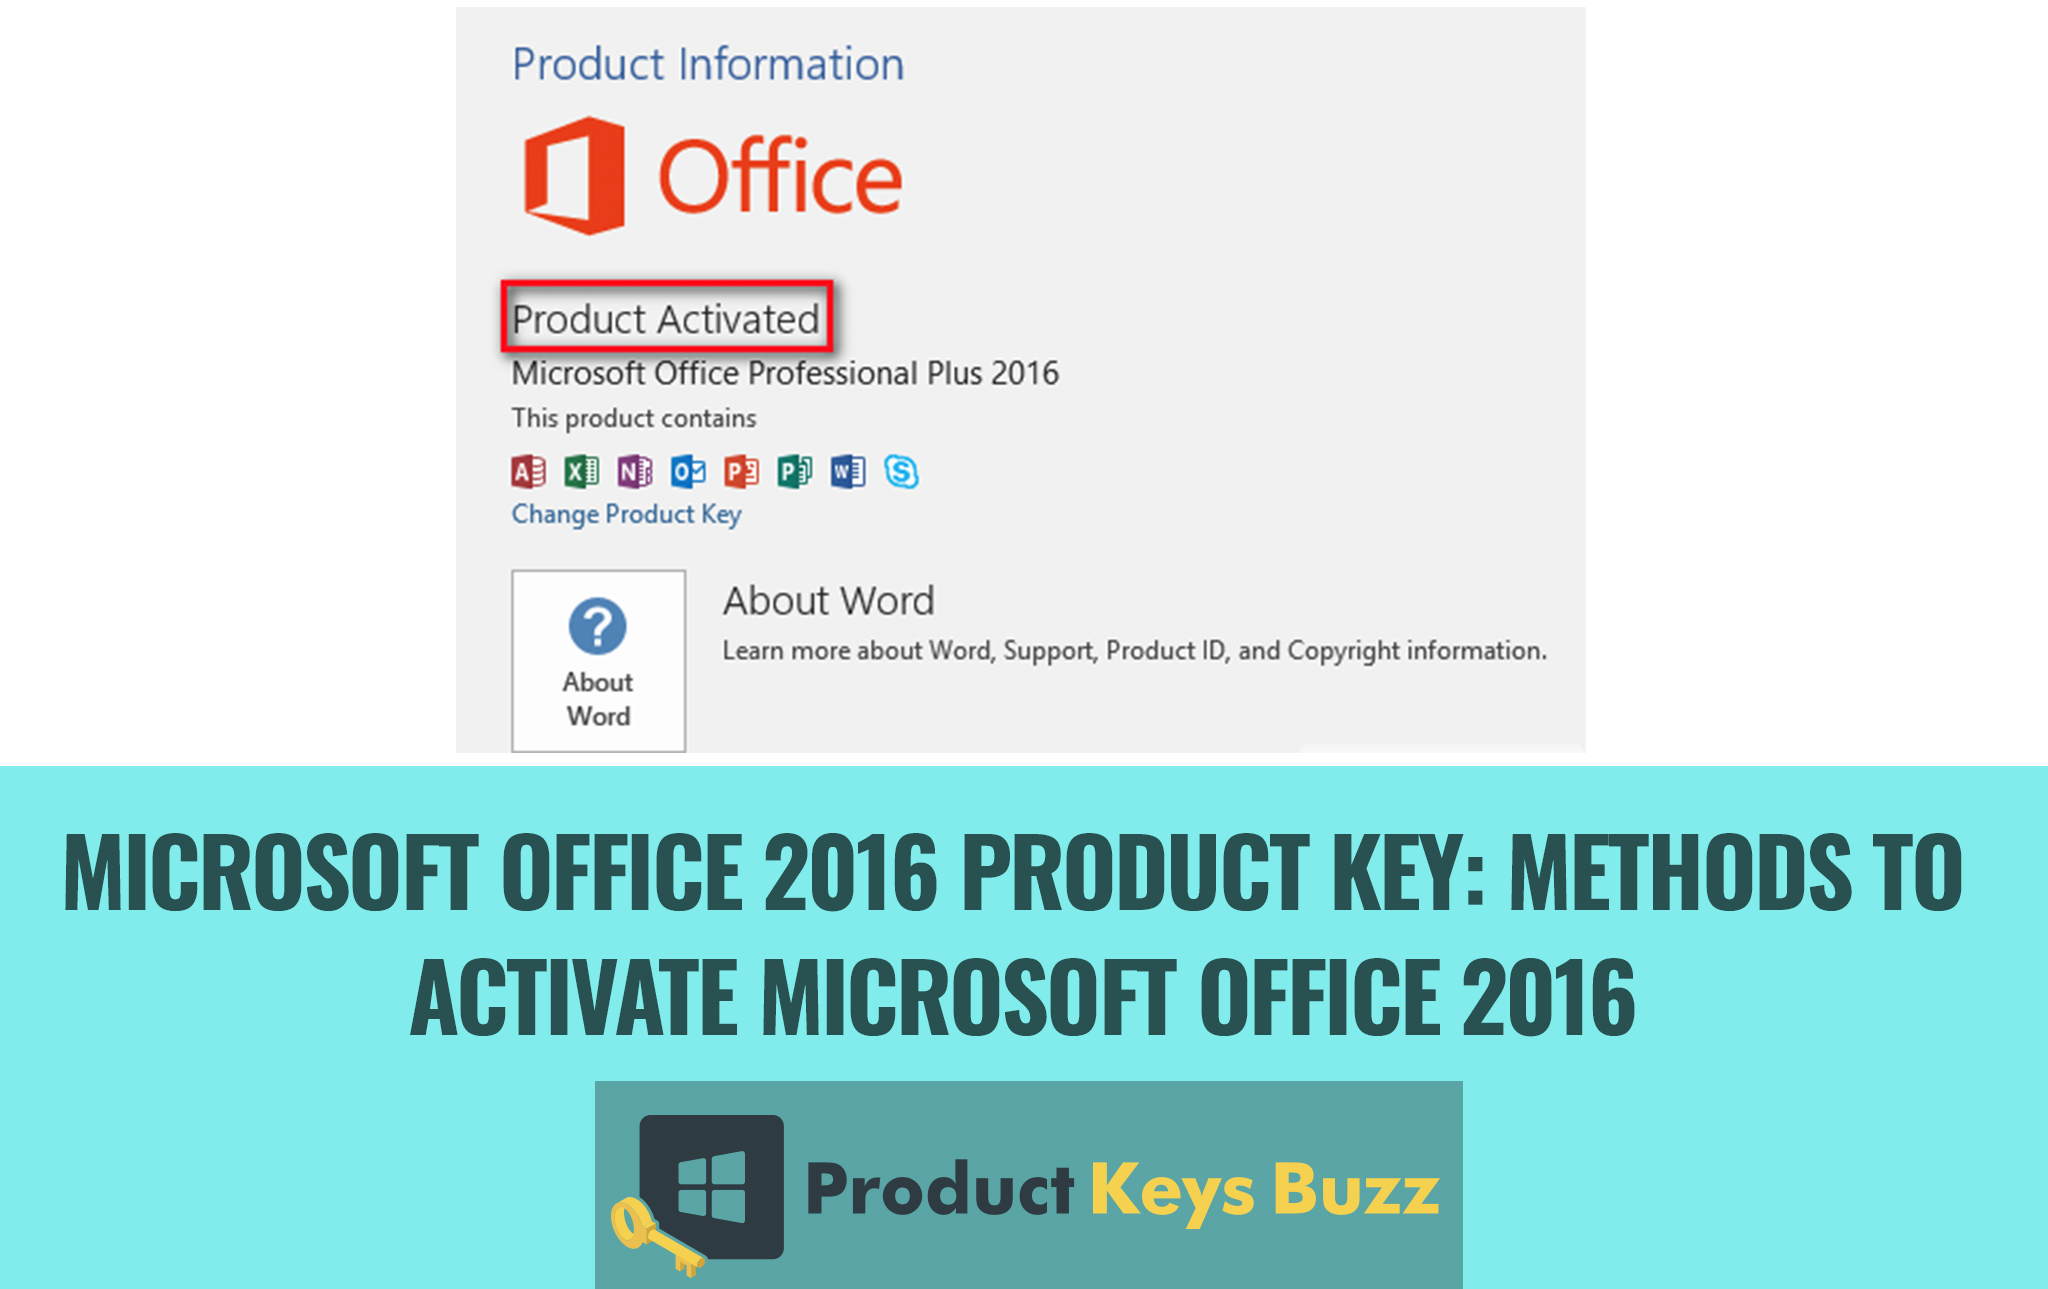 Working]* Microsoft Office 2016 Product Key: Easy Methods to